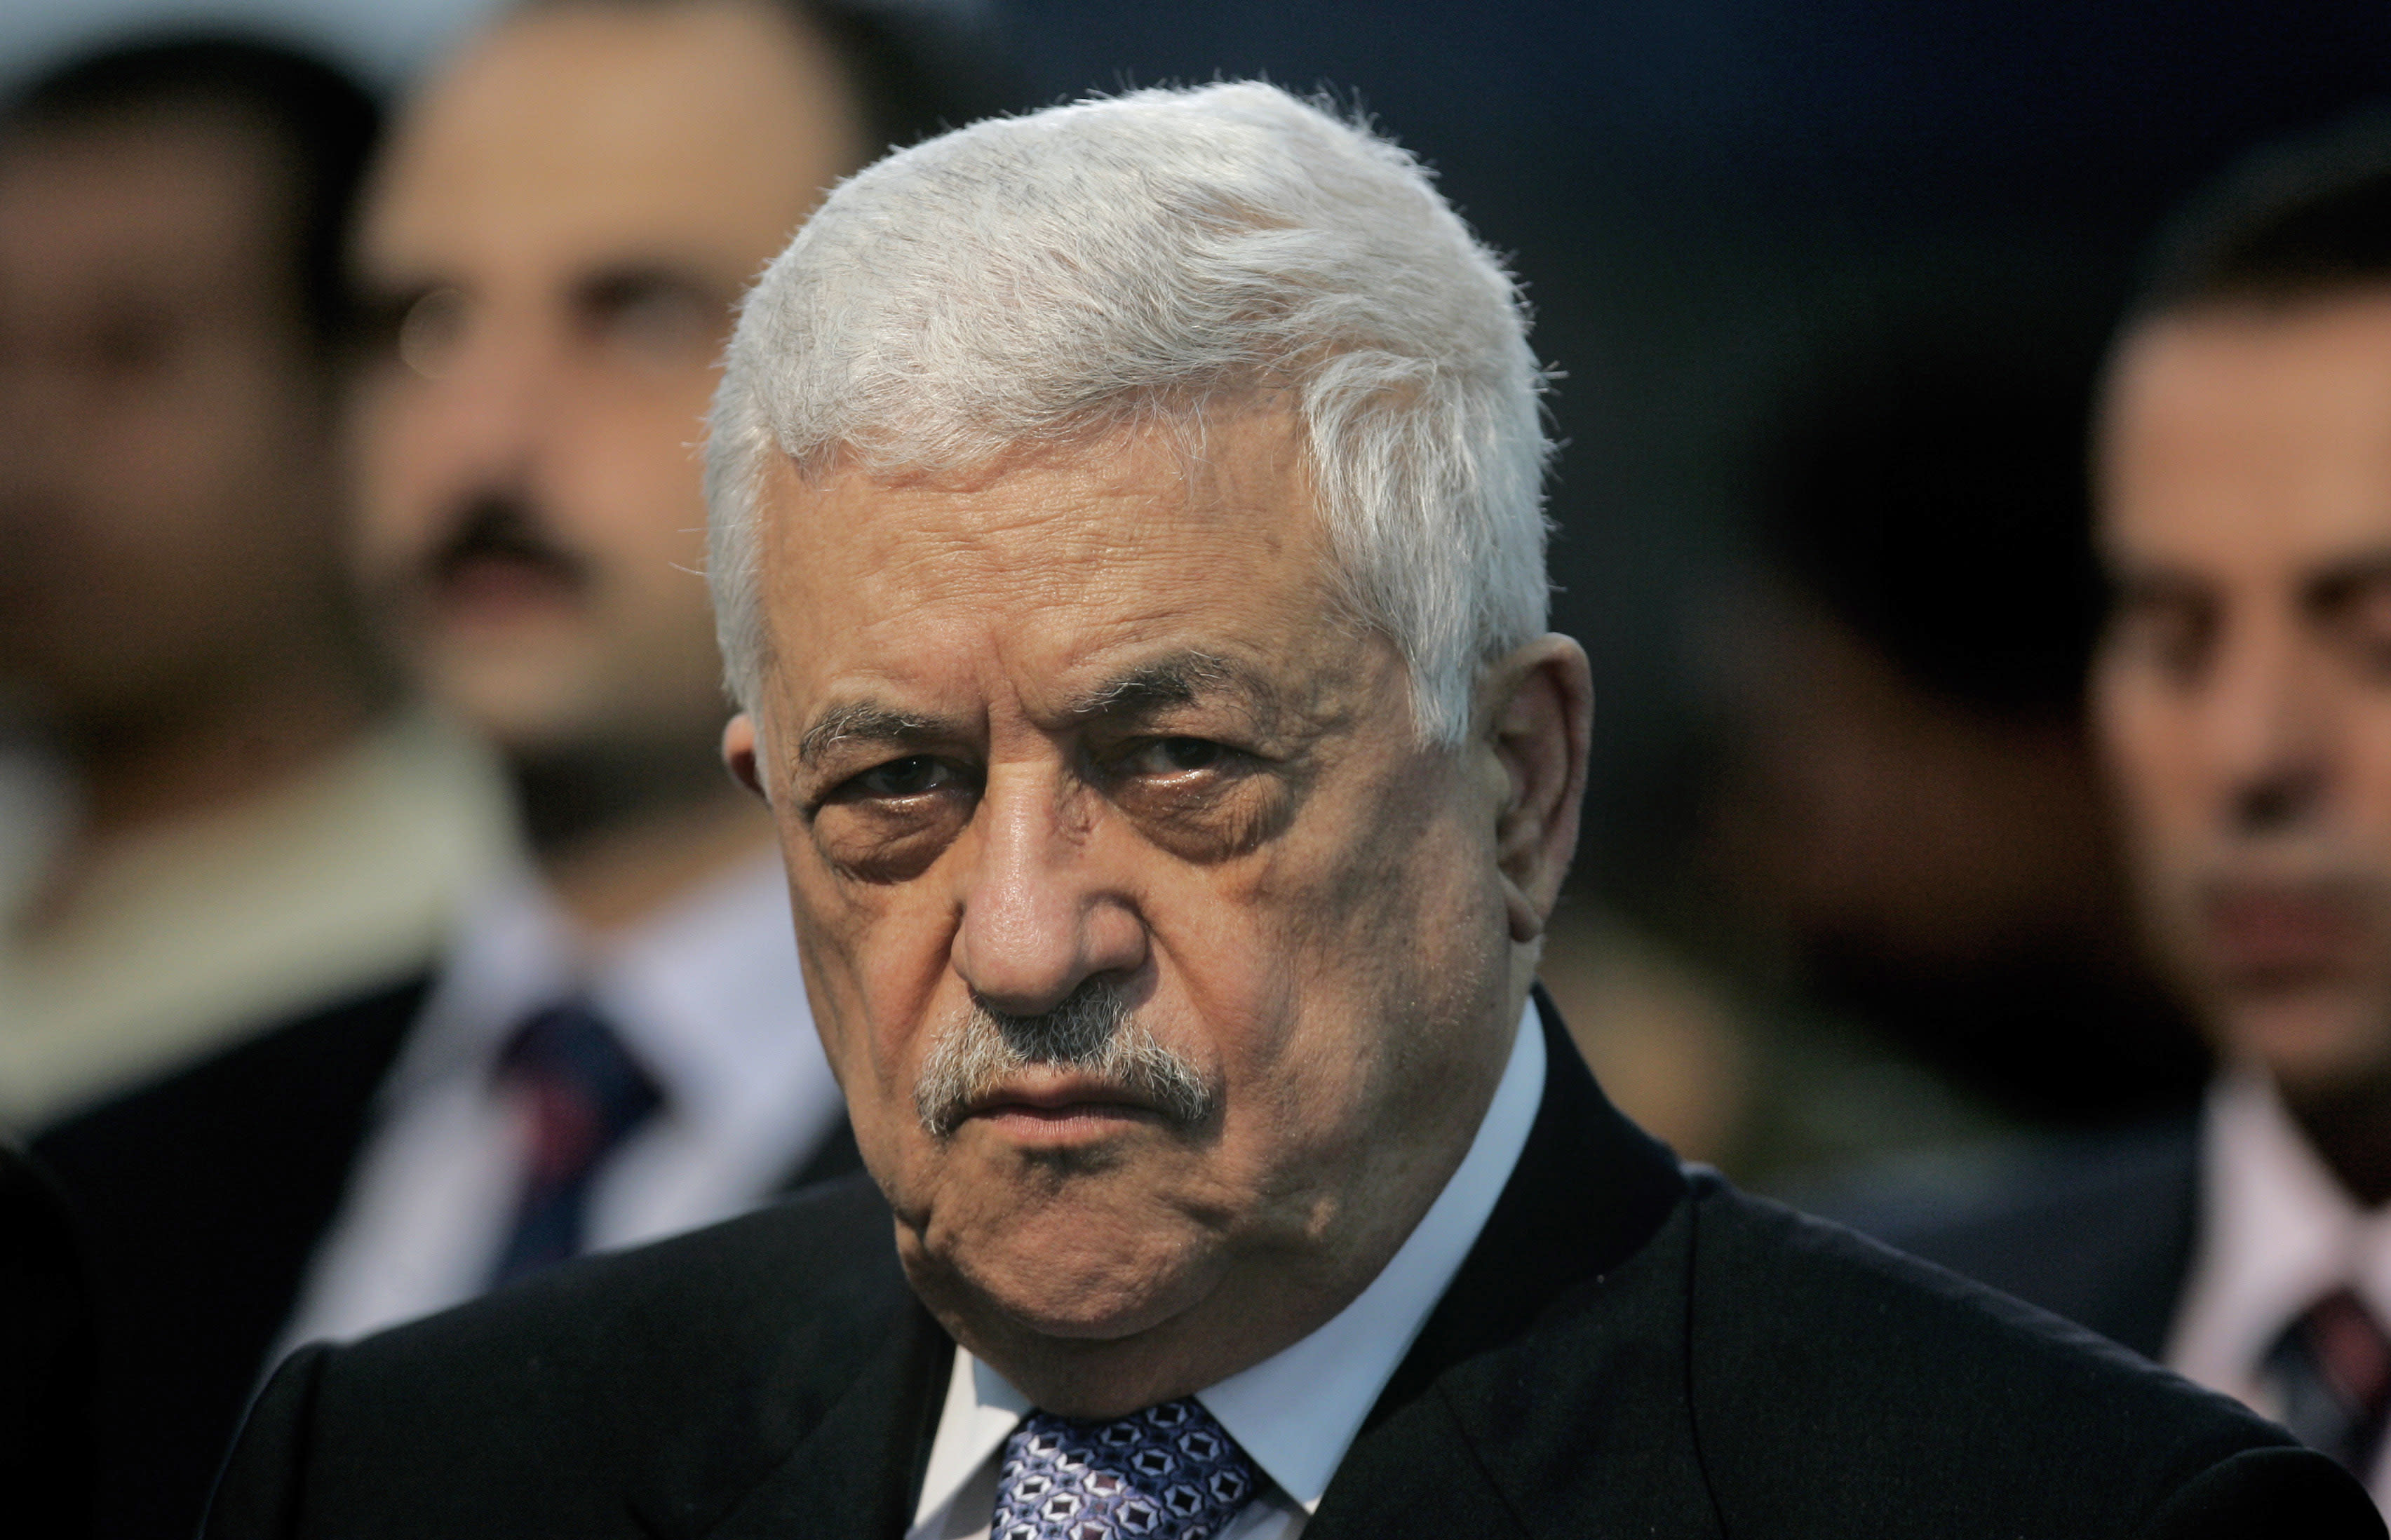 """File -- In this Friday, Oct. 26, 2007 file photo, Palestinian President Mahmoud Abbas, attends Muslim prayers at a mosque adjacent to his office in the West Bank city of Ramallah. Abbas called the Holocaust """"the ugliest crime humanity has known in modern history."""" His comments, published Sunday by the Palestinian official news agency WAFA, marked a rare acknowledgment by an Arab leader of Jewish suffering during the Nazi genocide. Some 6 million Jews perished in the Holocaust. (AP Photo/Muhammed Muheisen, File)"""